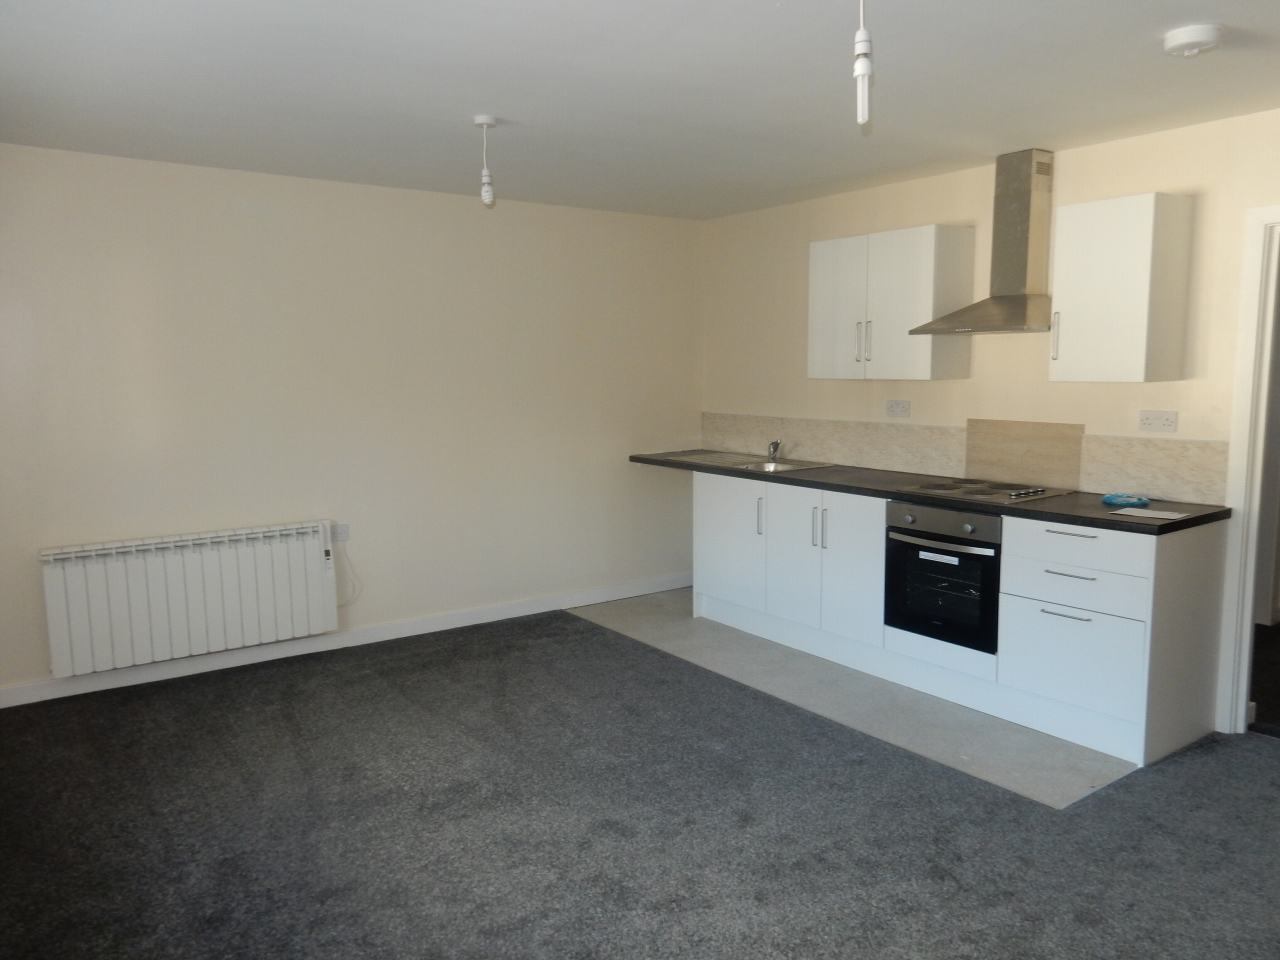 1 bedroom apartment flat/apartment To Let in Crook - Photograph 1.